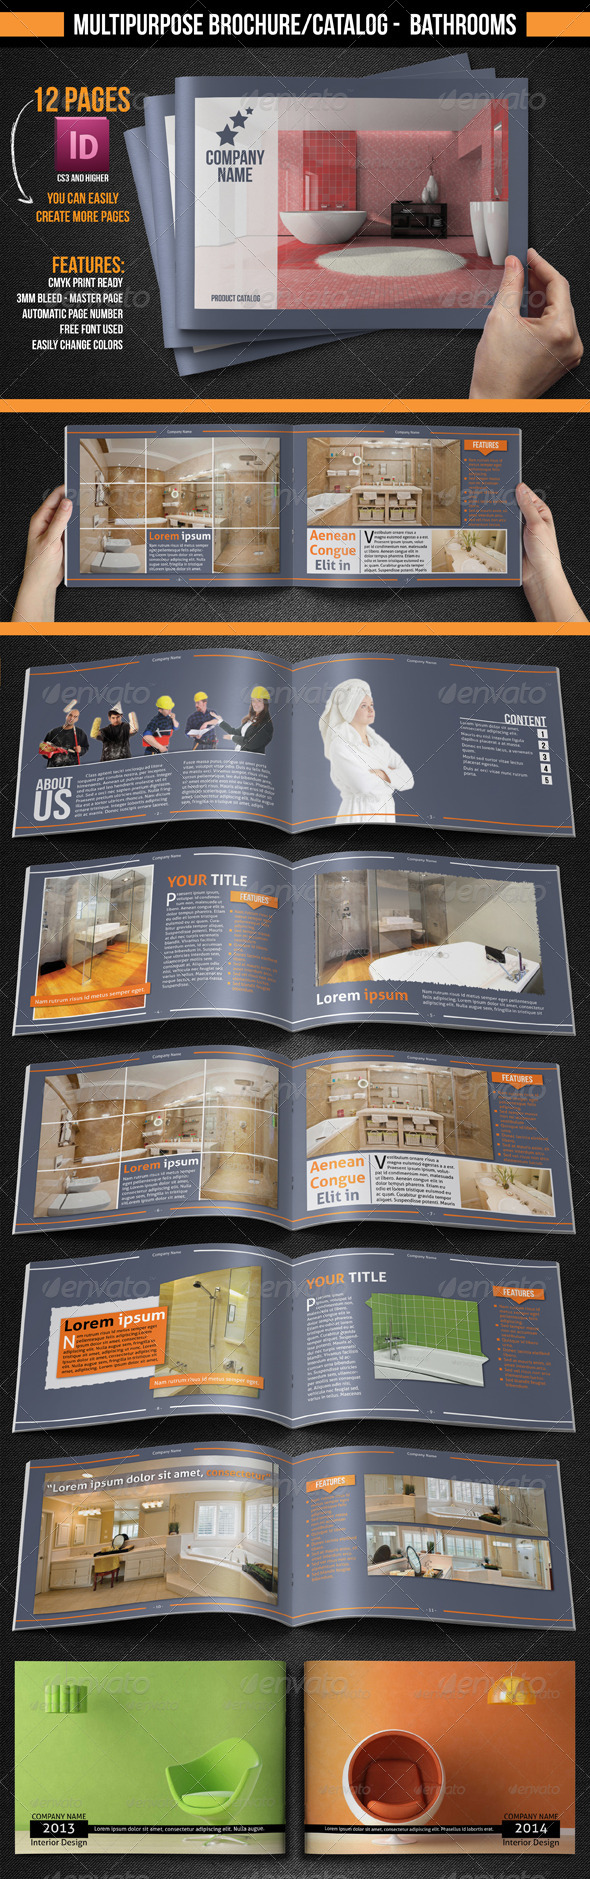 Multipurpose Brochure Catalogue Bathrooms